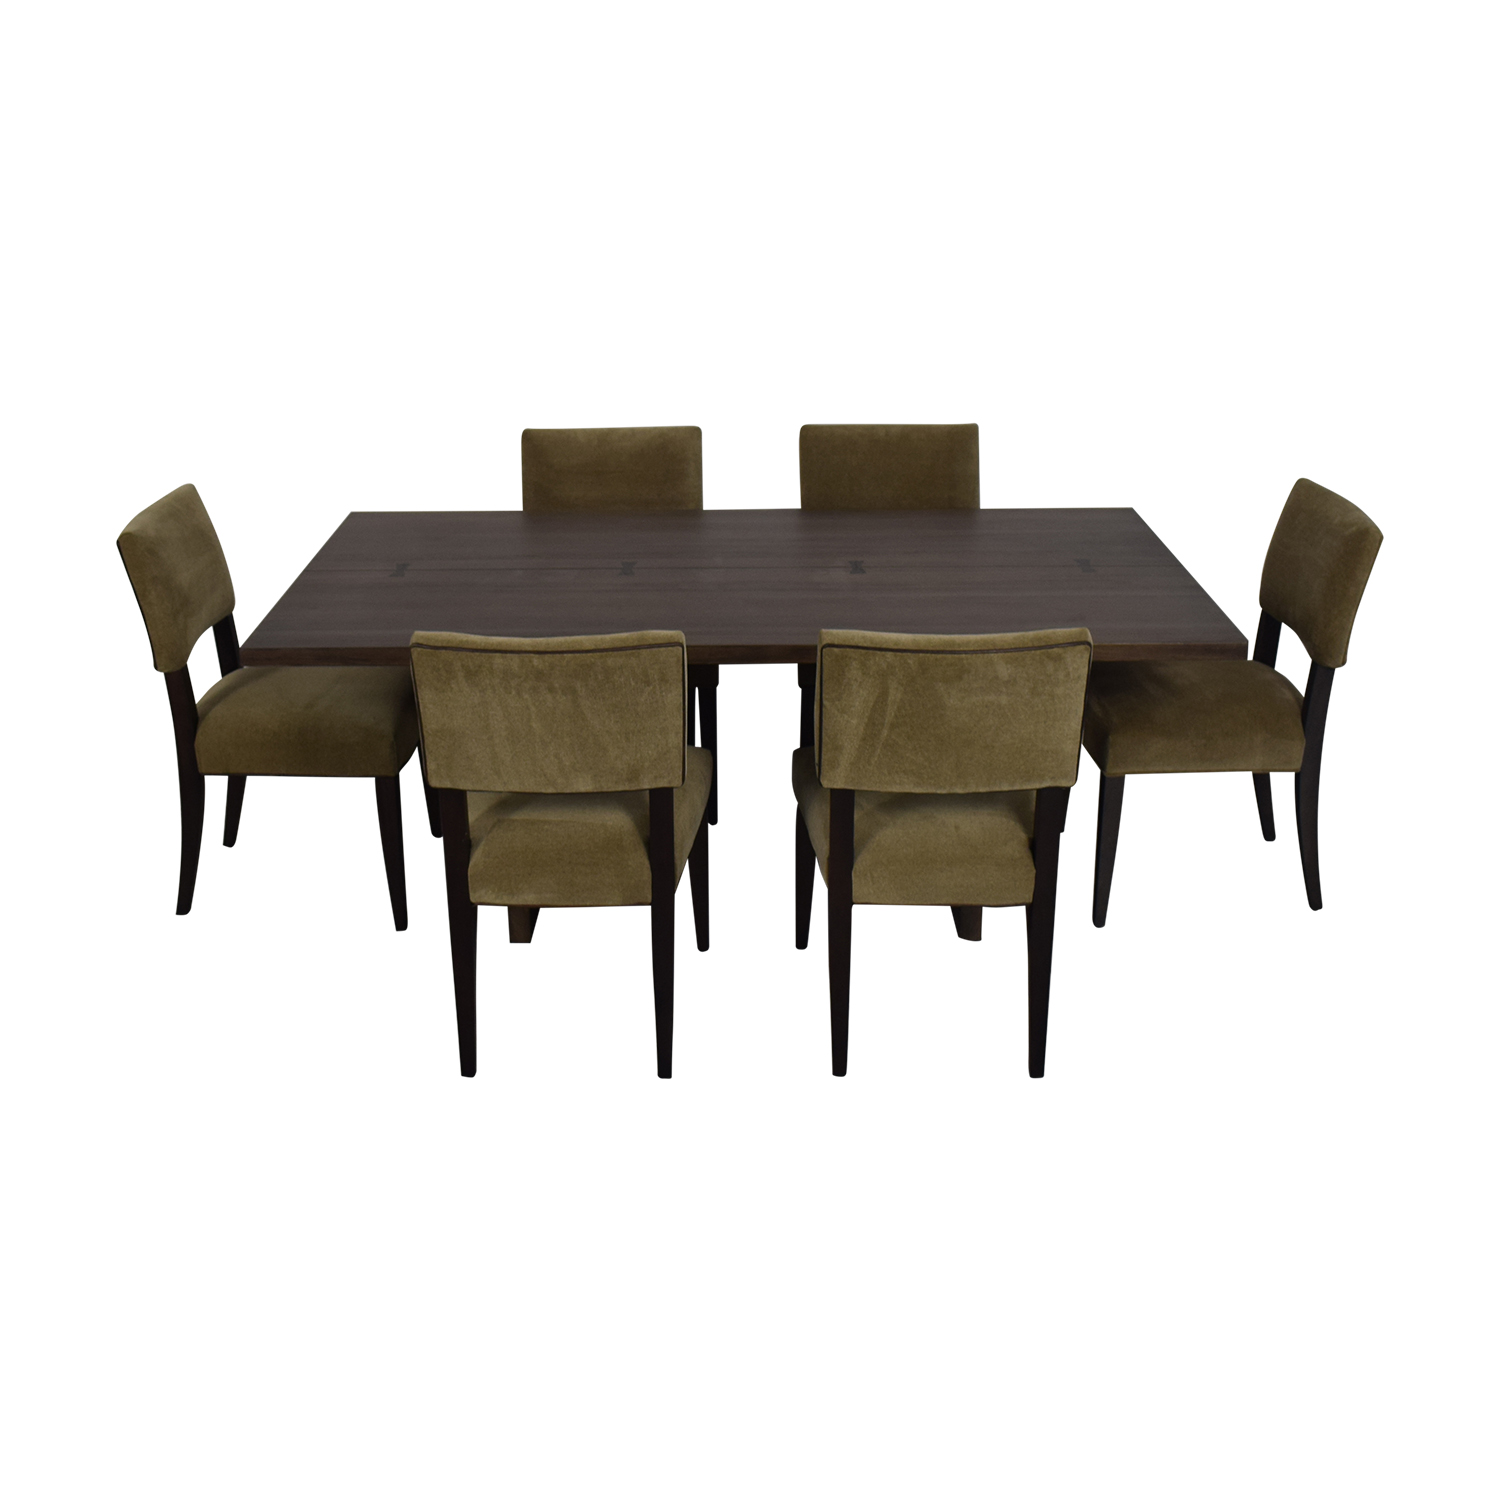 Crate & Barrel Crate & Barrel Monarch Dining Table and Cody Dining Chairs Dining Sets